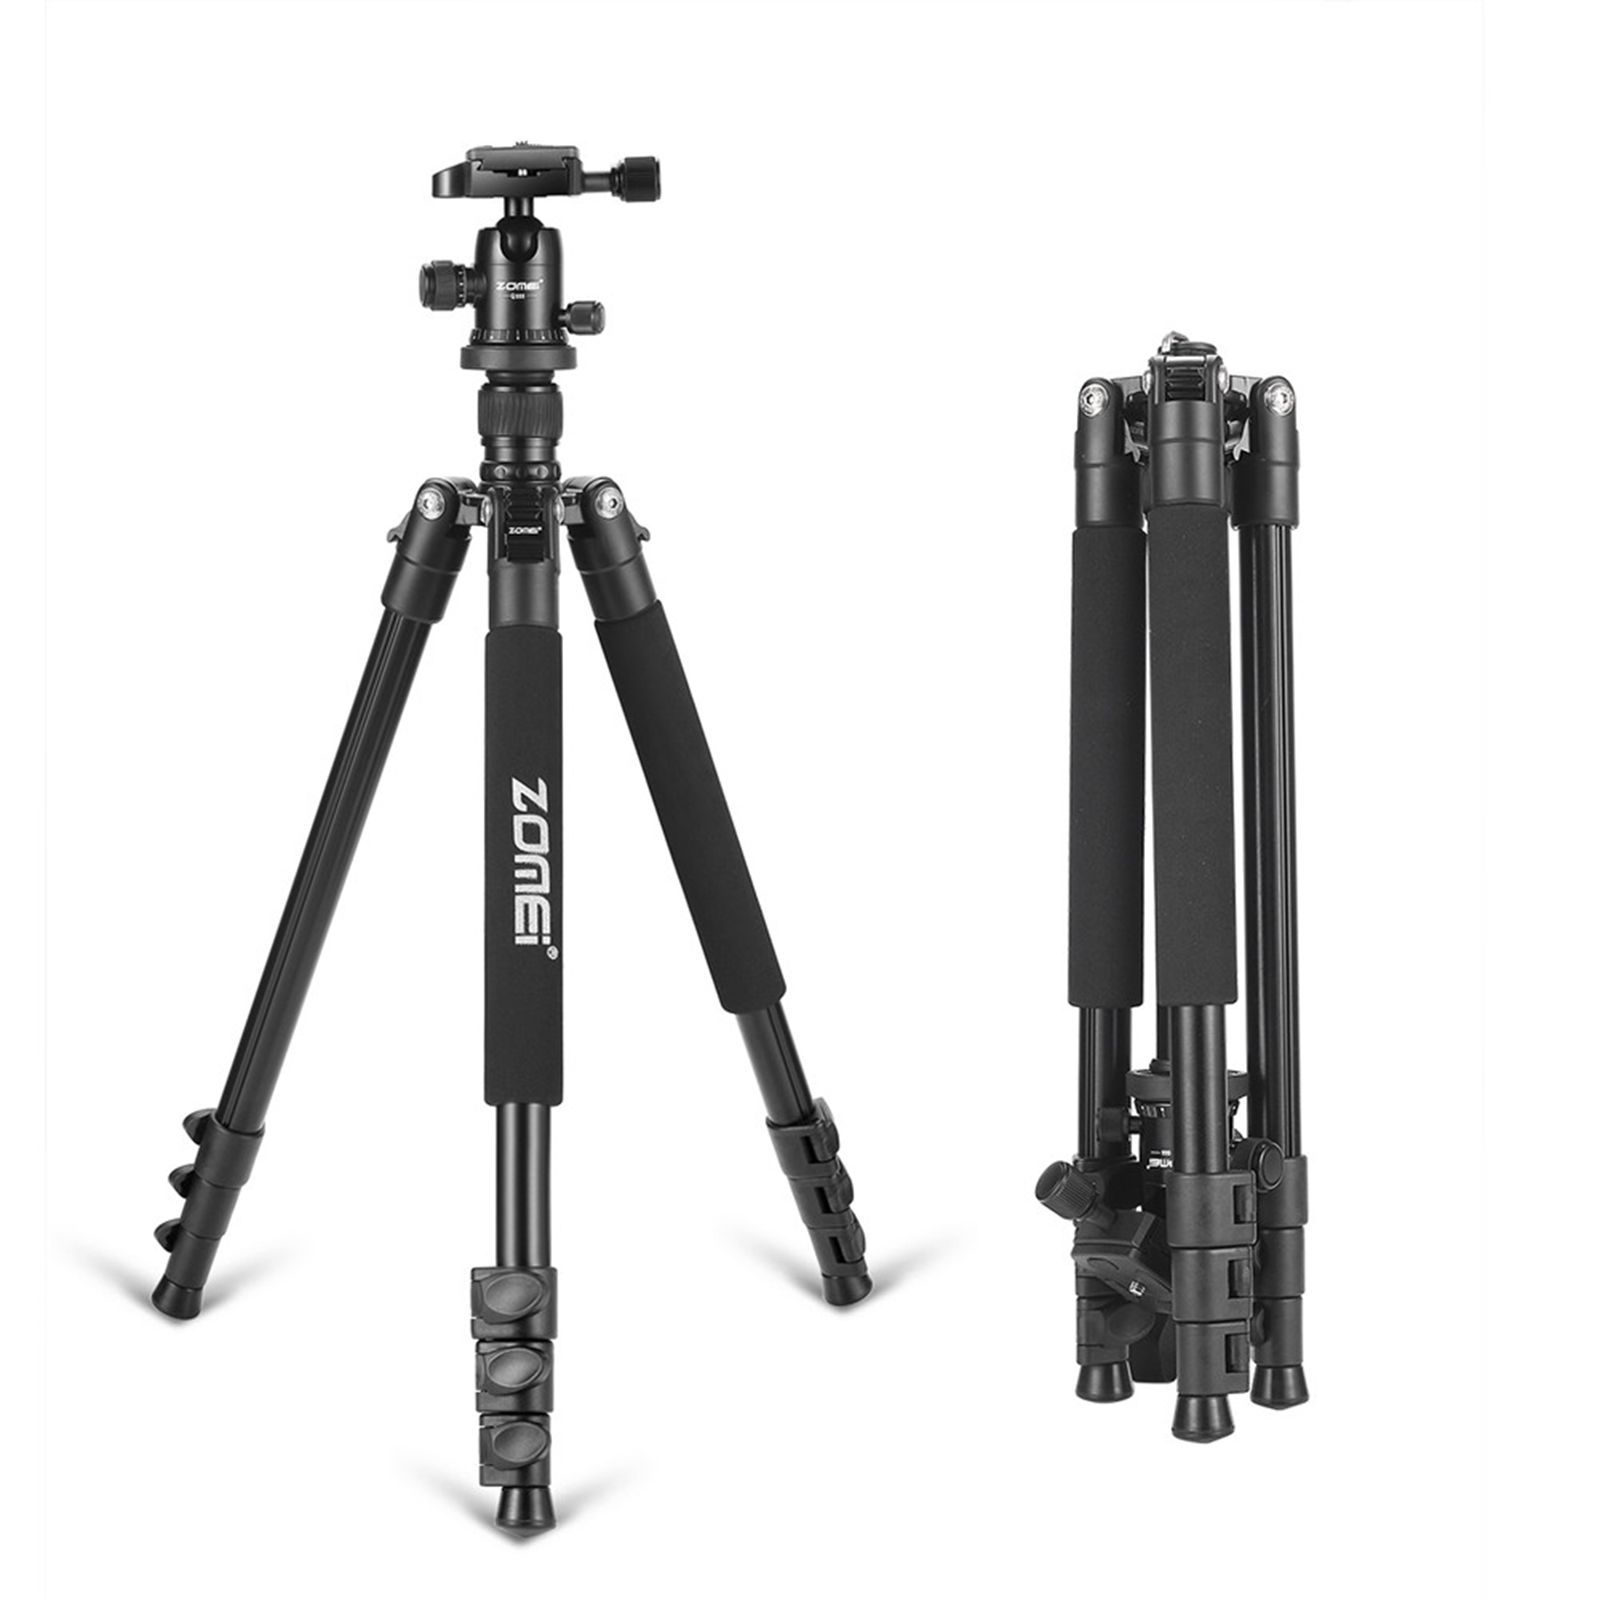 Q555 Pro Portable Aluminum Digital Camera Tripod Monopod With Ball Head + 1/4